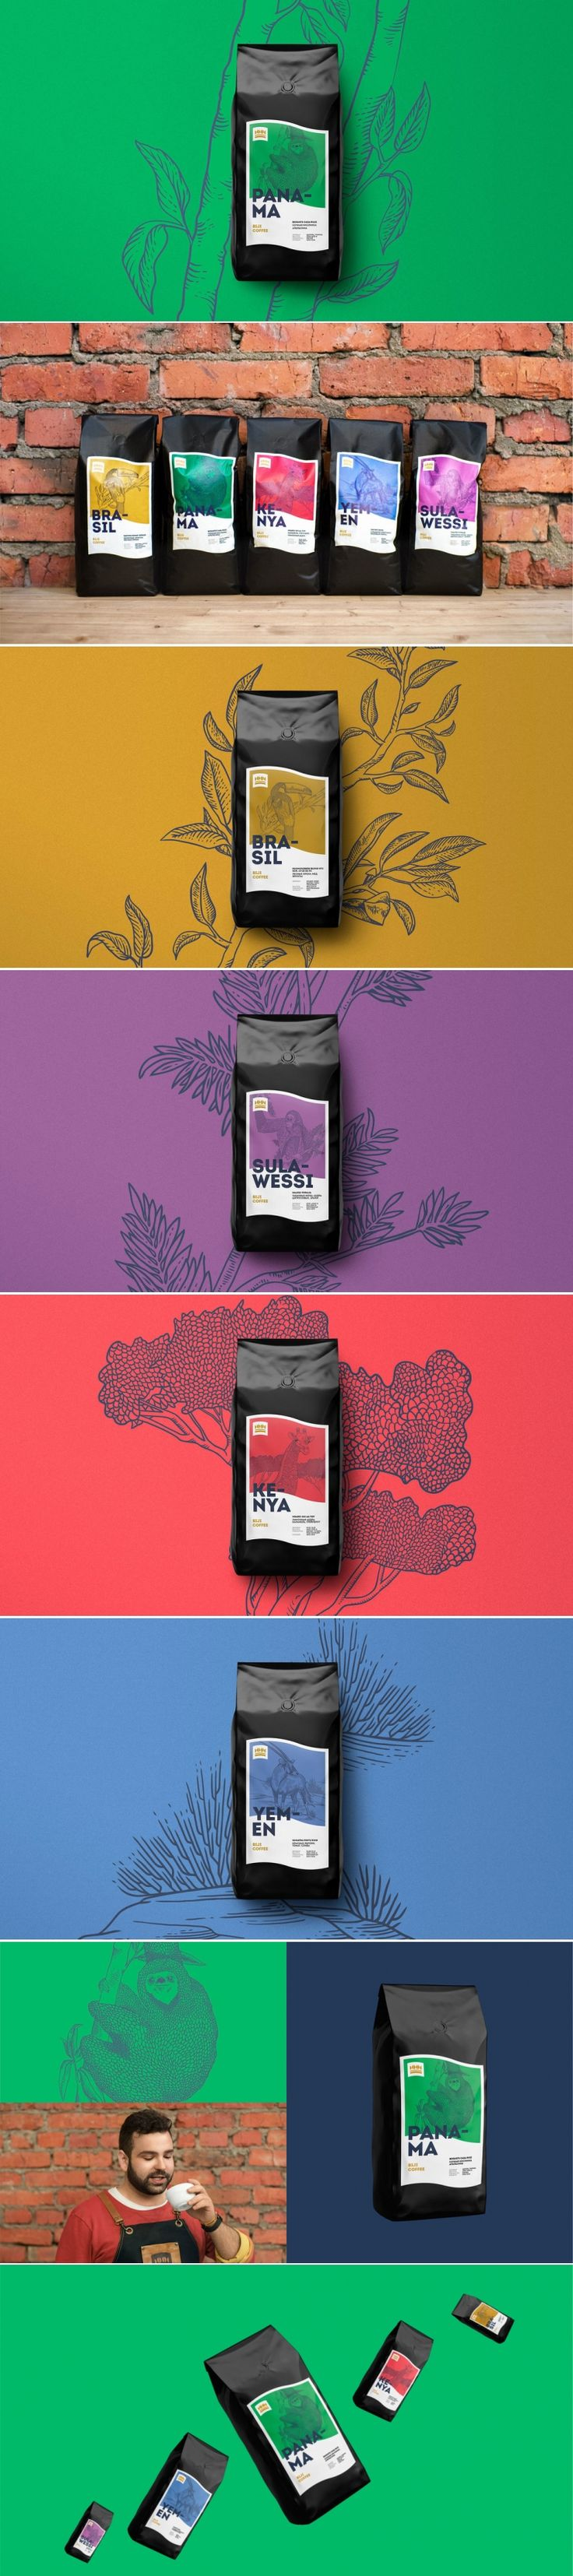 Biji Coffee Gets a Colorful Look With Illustrations Inspired By The Origins of the Beans — The Dieline | Packaging & Branding Design & Innovation News